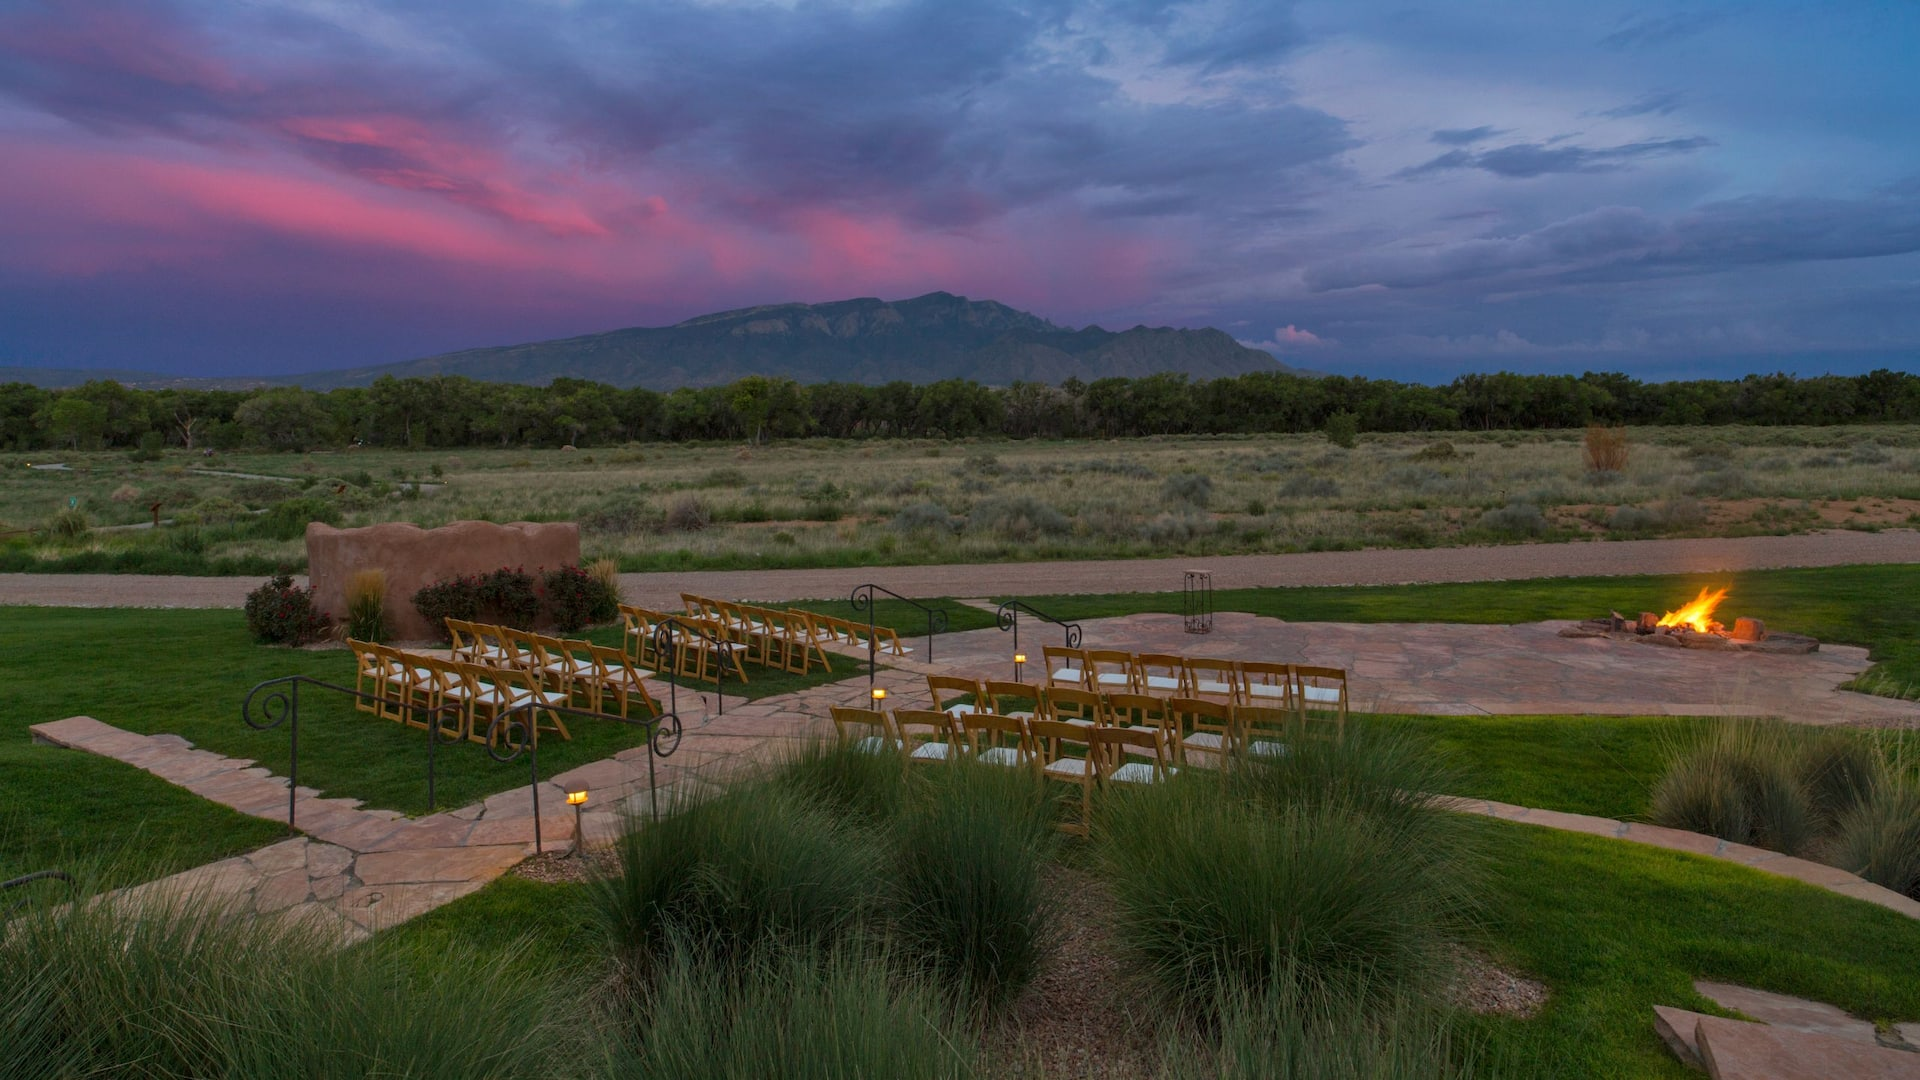 Amphitheater Hyatt Regency Tamaya Resort & Spa